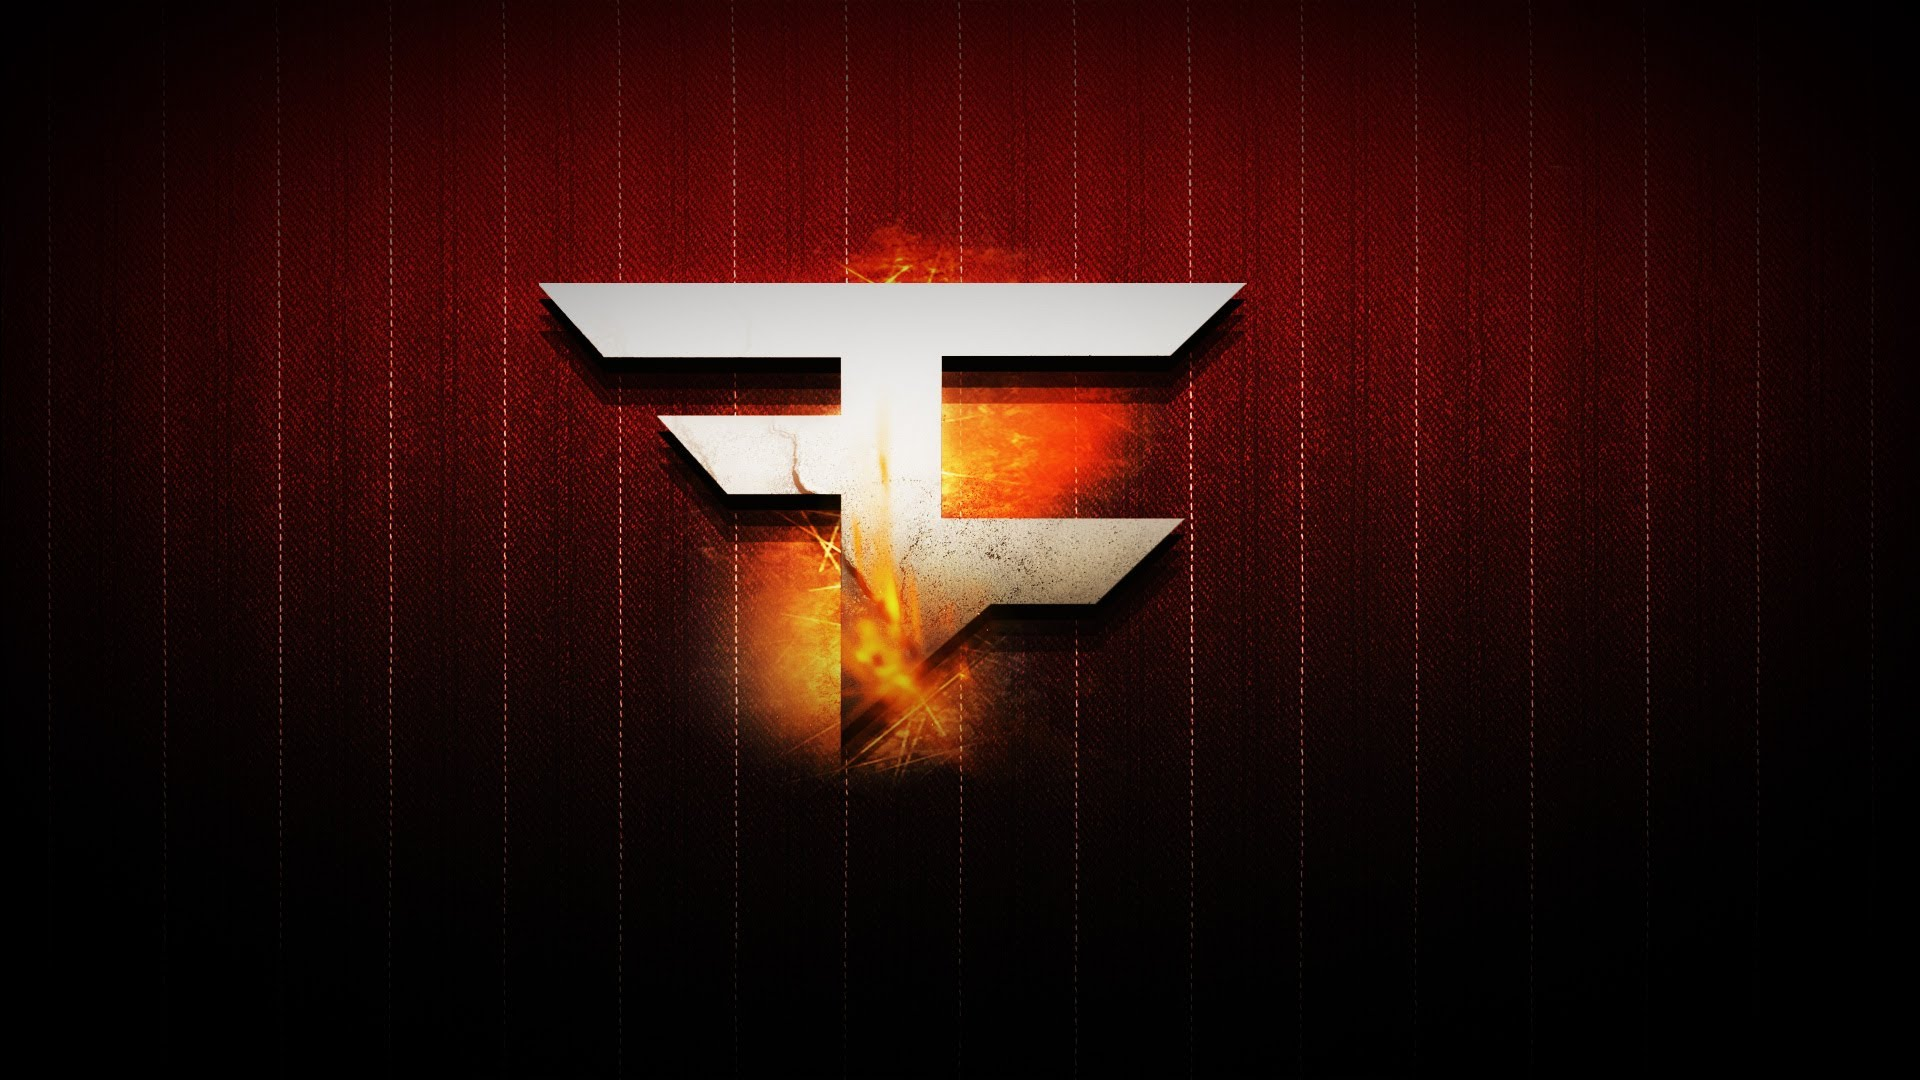 FaZe Clan Wallpaper Speed Art 6 1920x1080